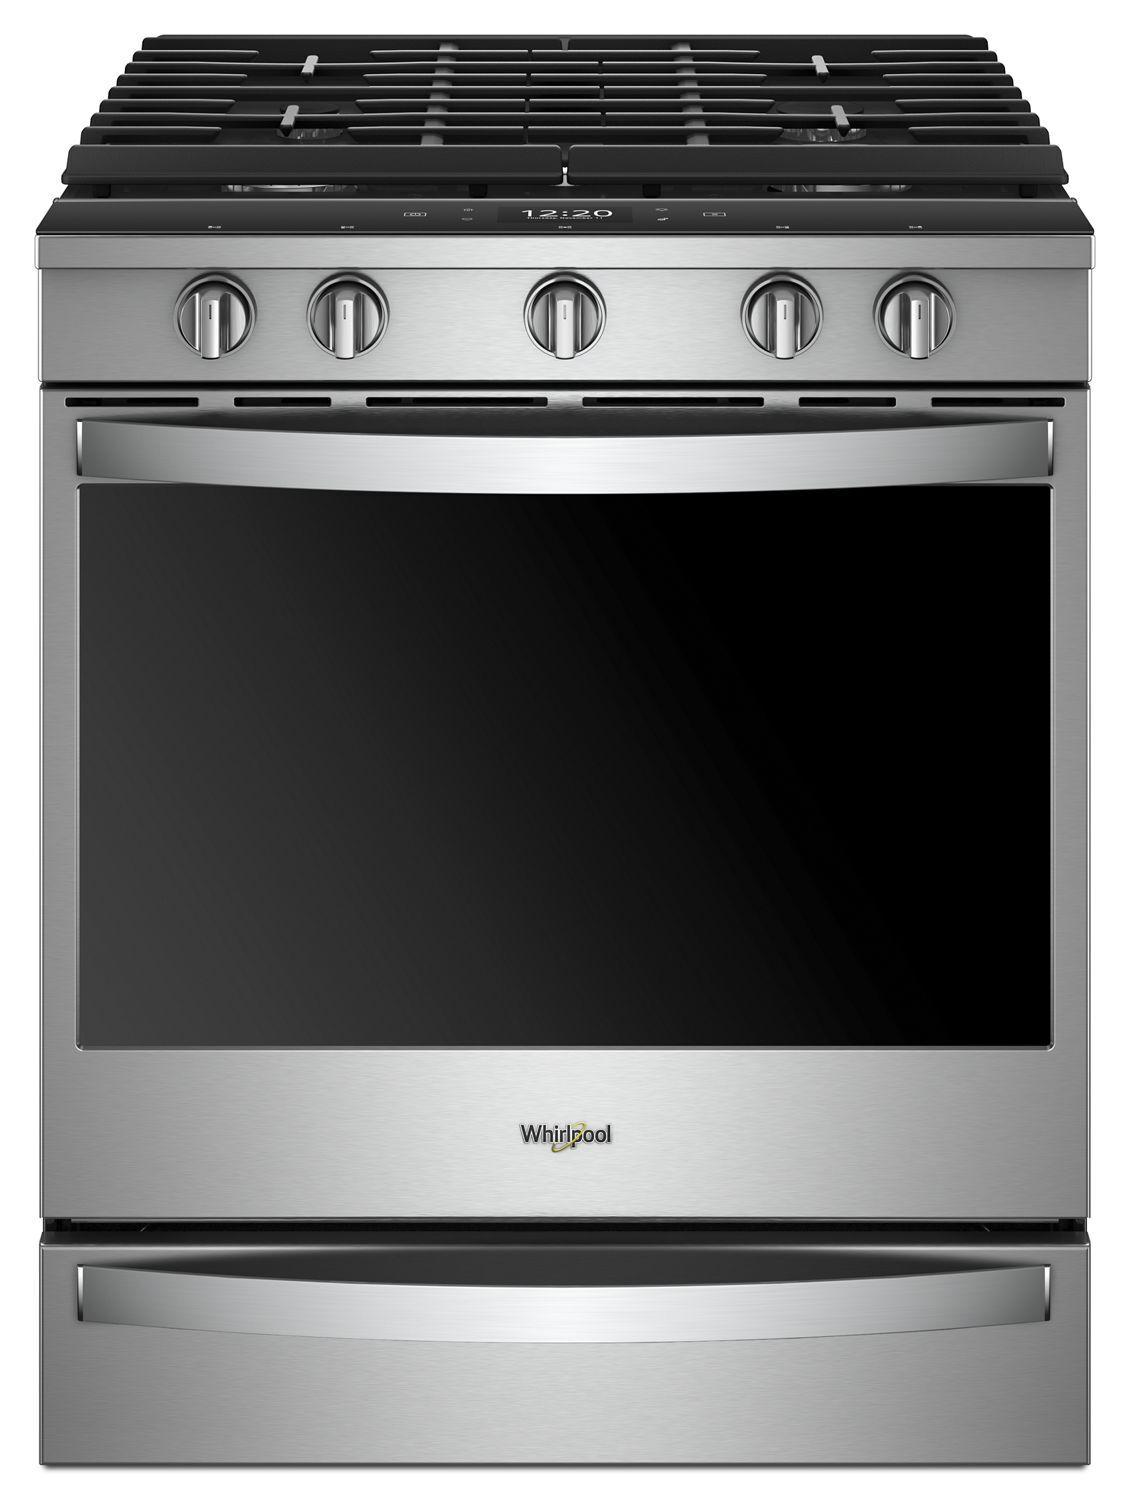 Whirlpool5.8 Cu. Ft. Smart Slide-In Gas Range With Ez-2-Lift™ Hinged Cast-Iron Grates Fingerprint Resistant Stainless Steel